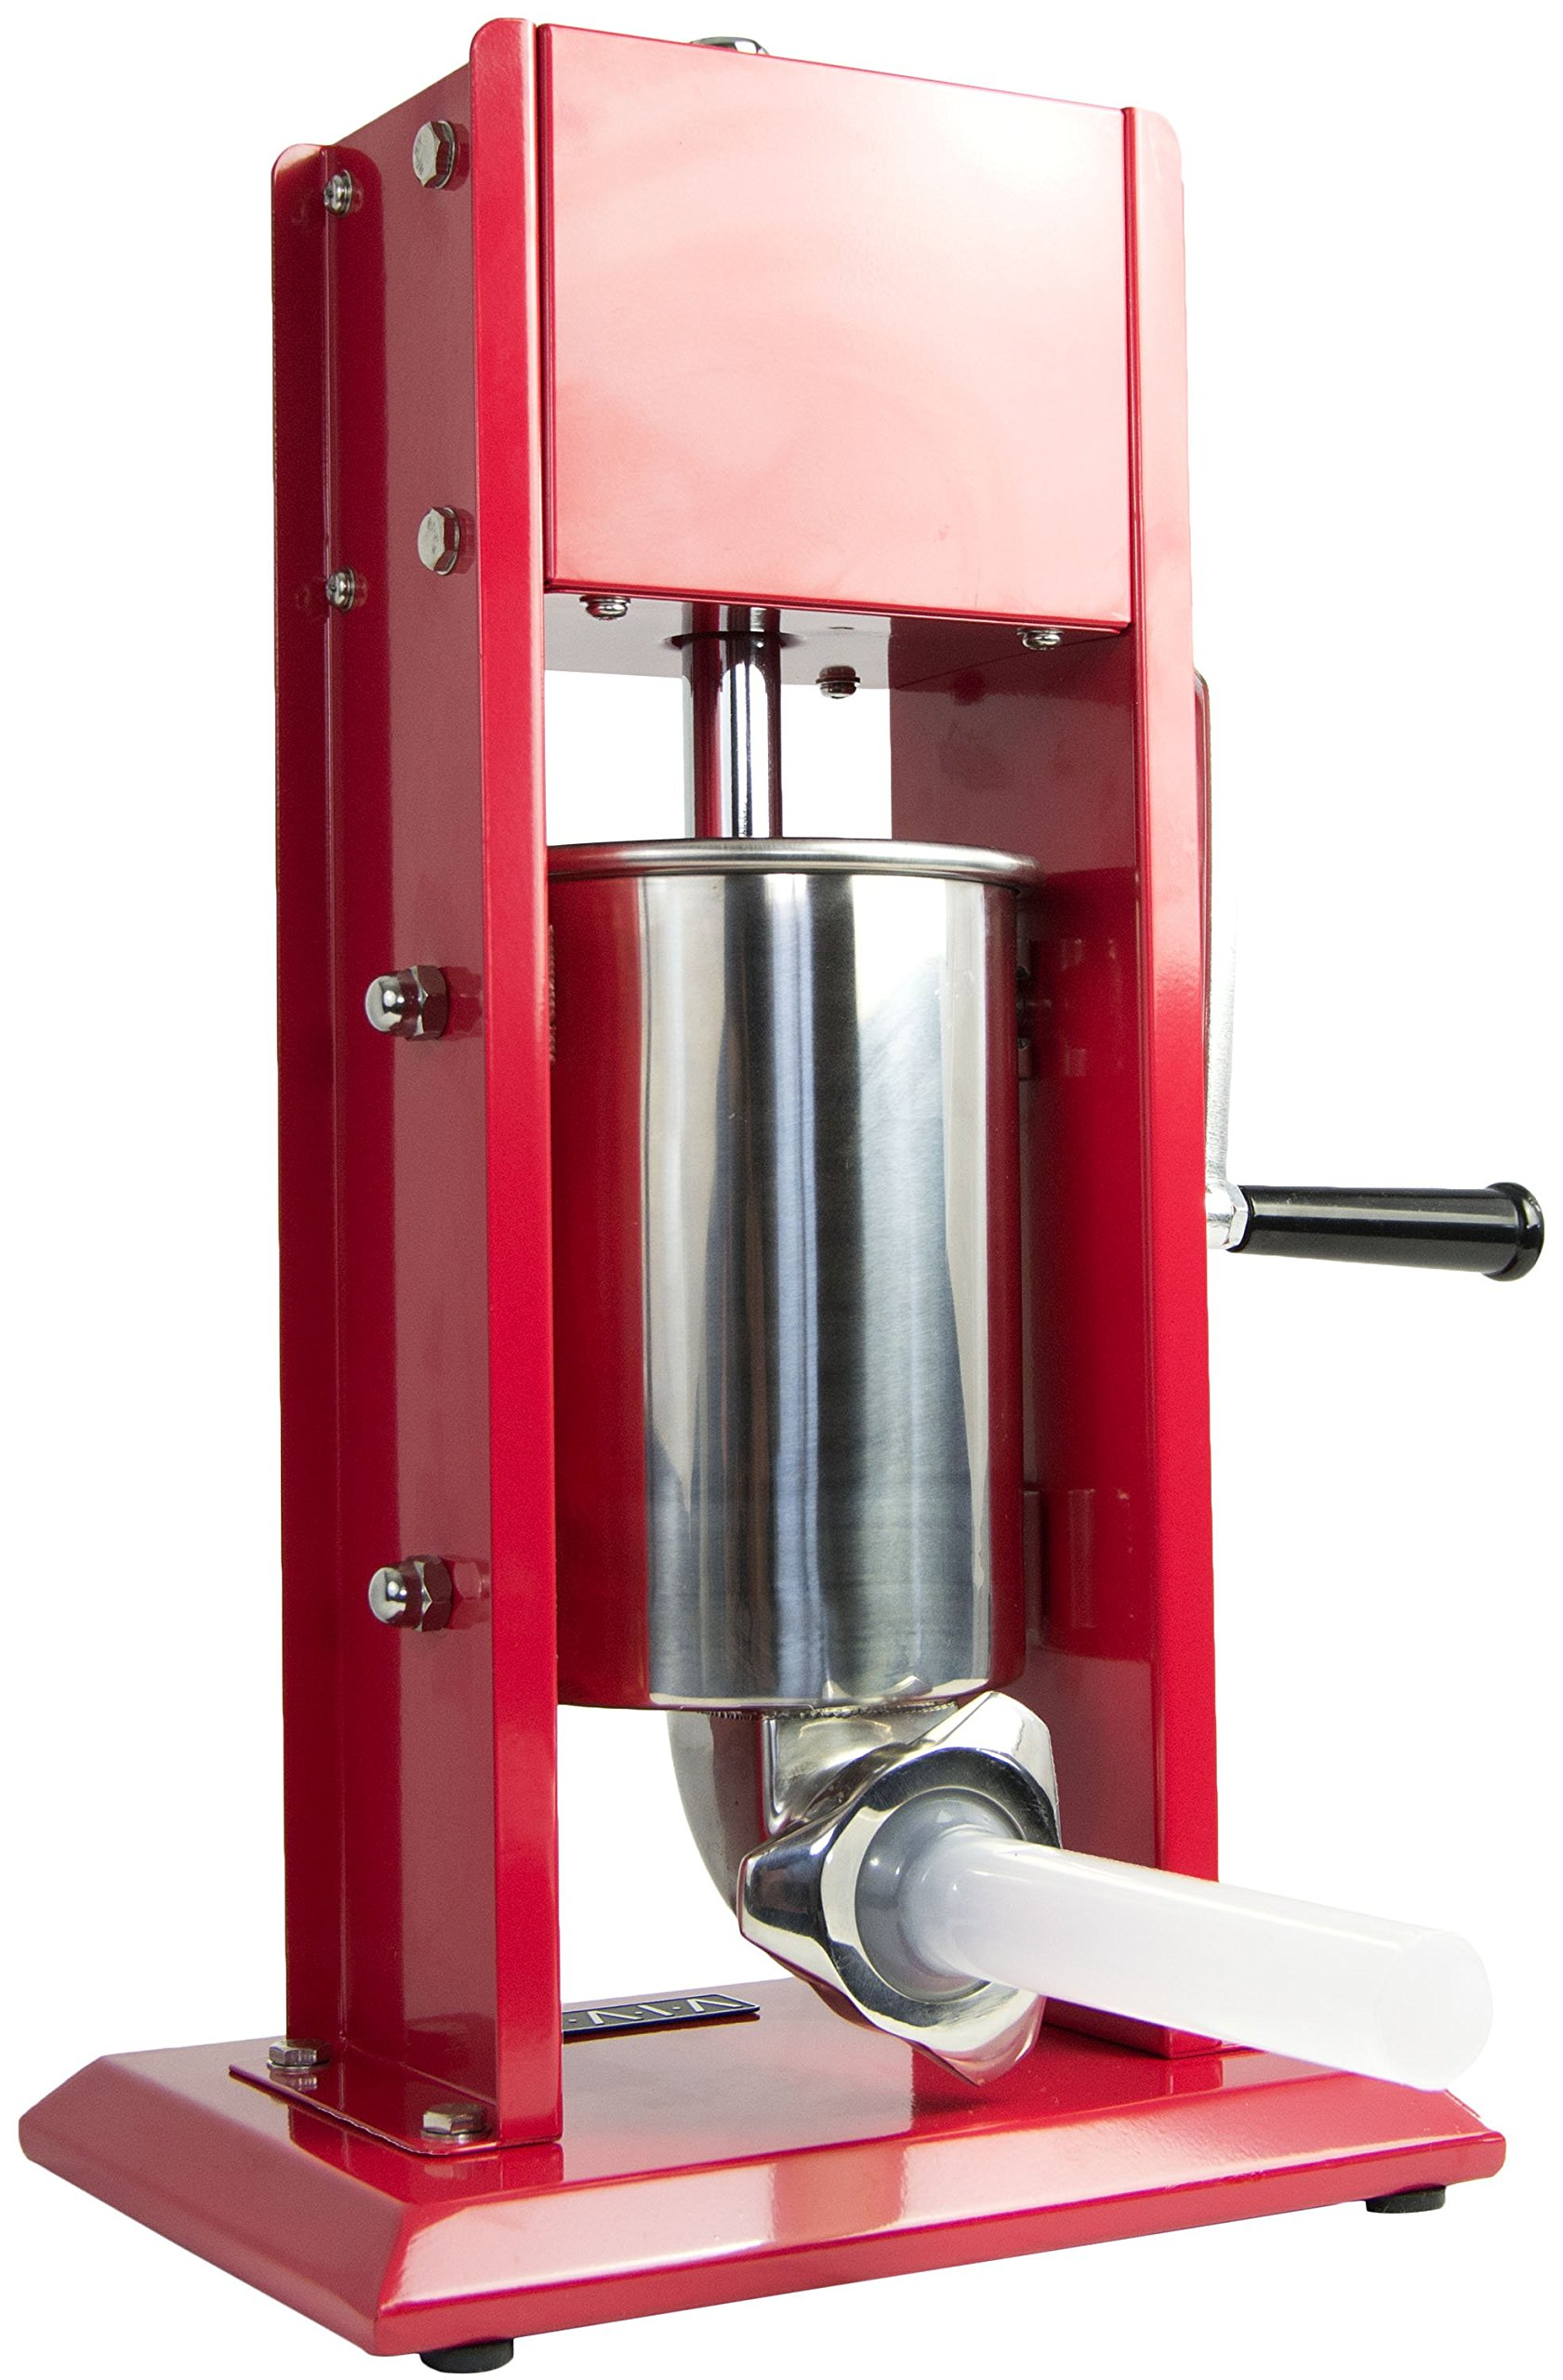 VIVO Sausage Stuffer Vertical Dual Gear Stainless Steel 3L/7LB 5-7 Pounds of Meat (STUFR-V203)